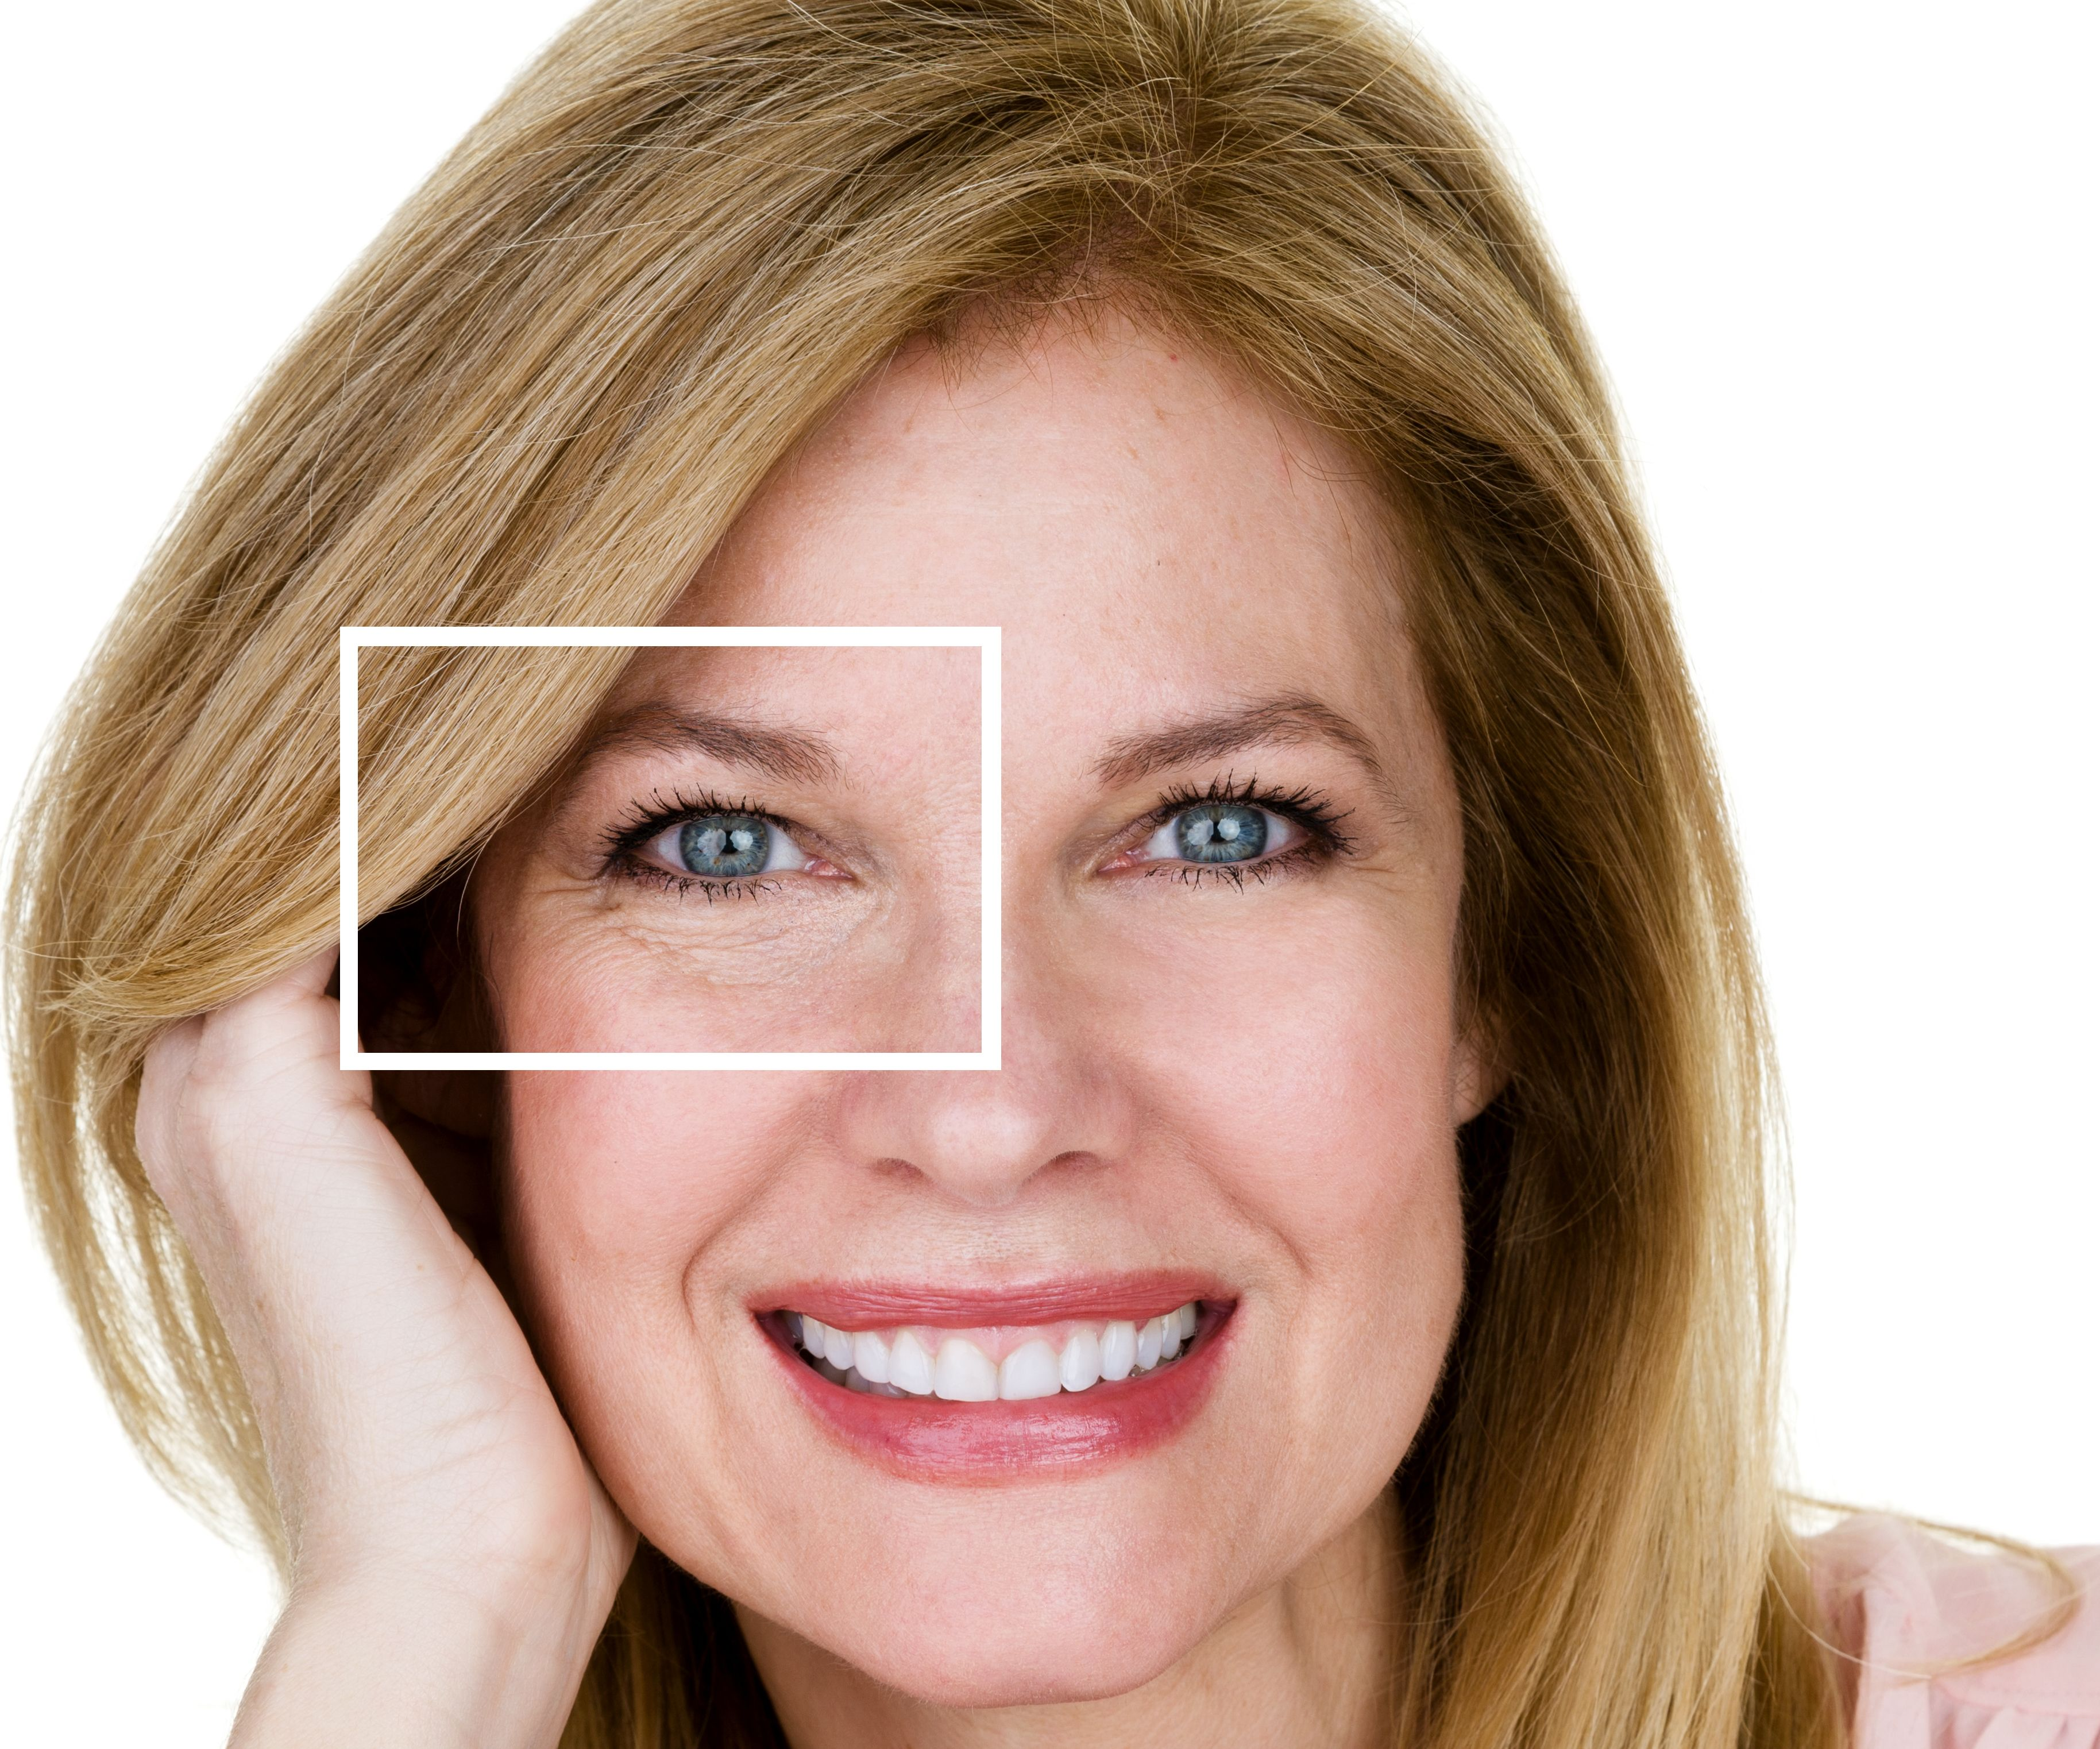 A woman's face with a box zooming in on wrinkles around her eyes